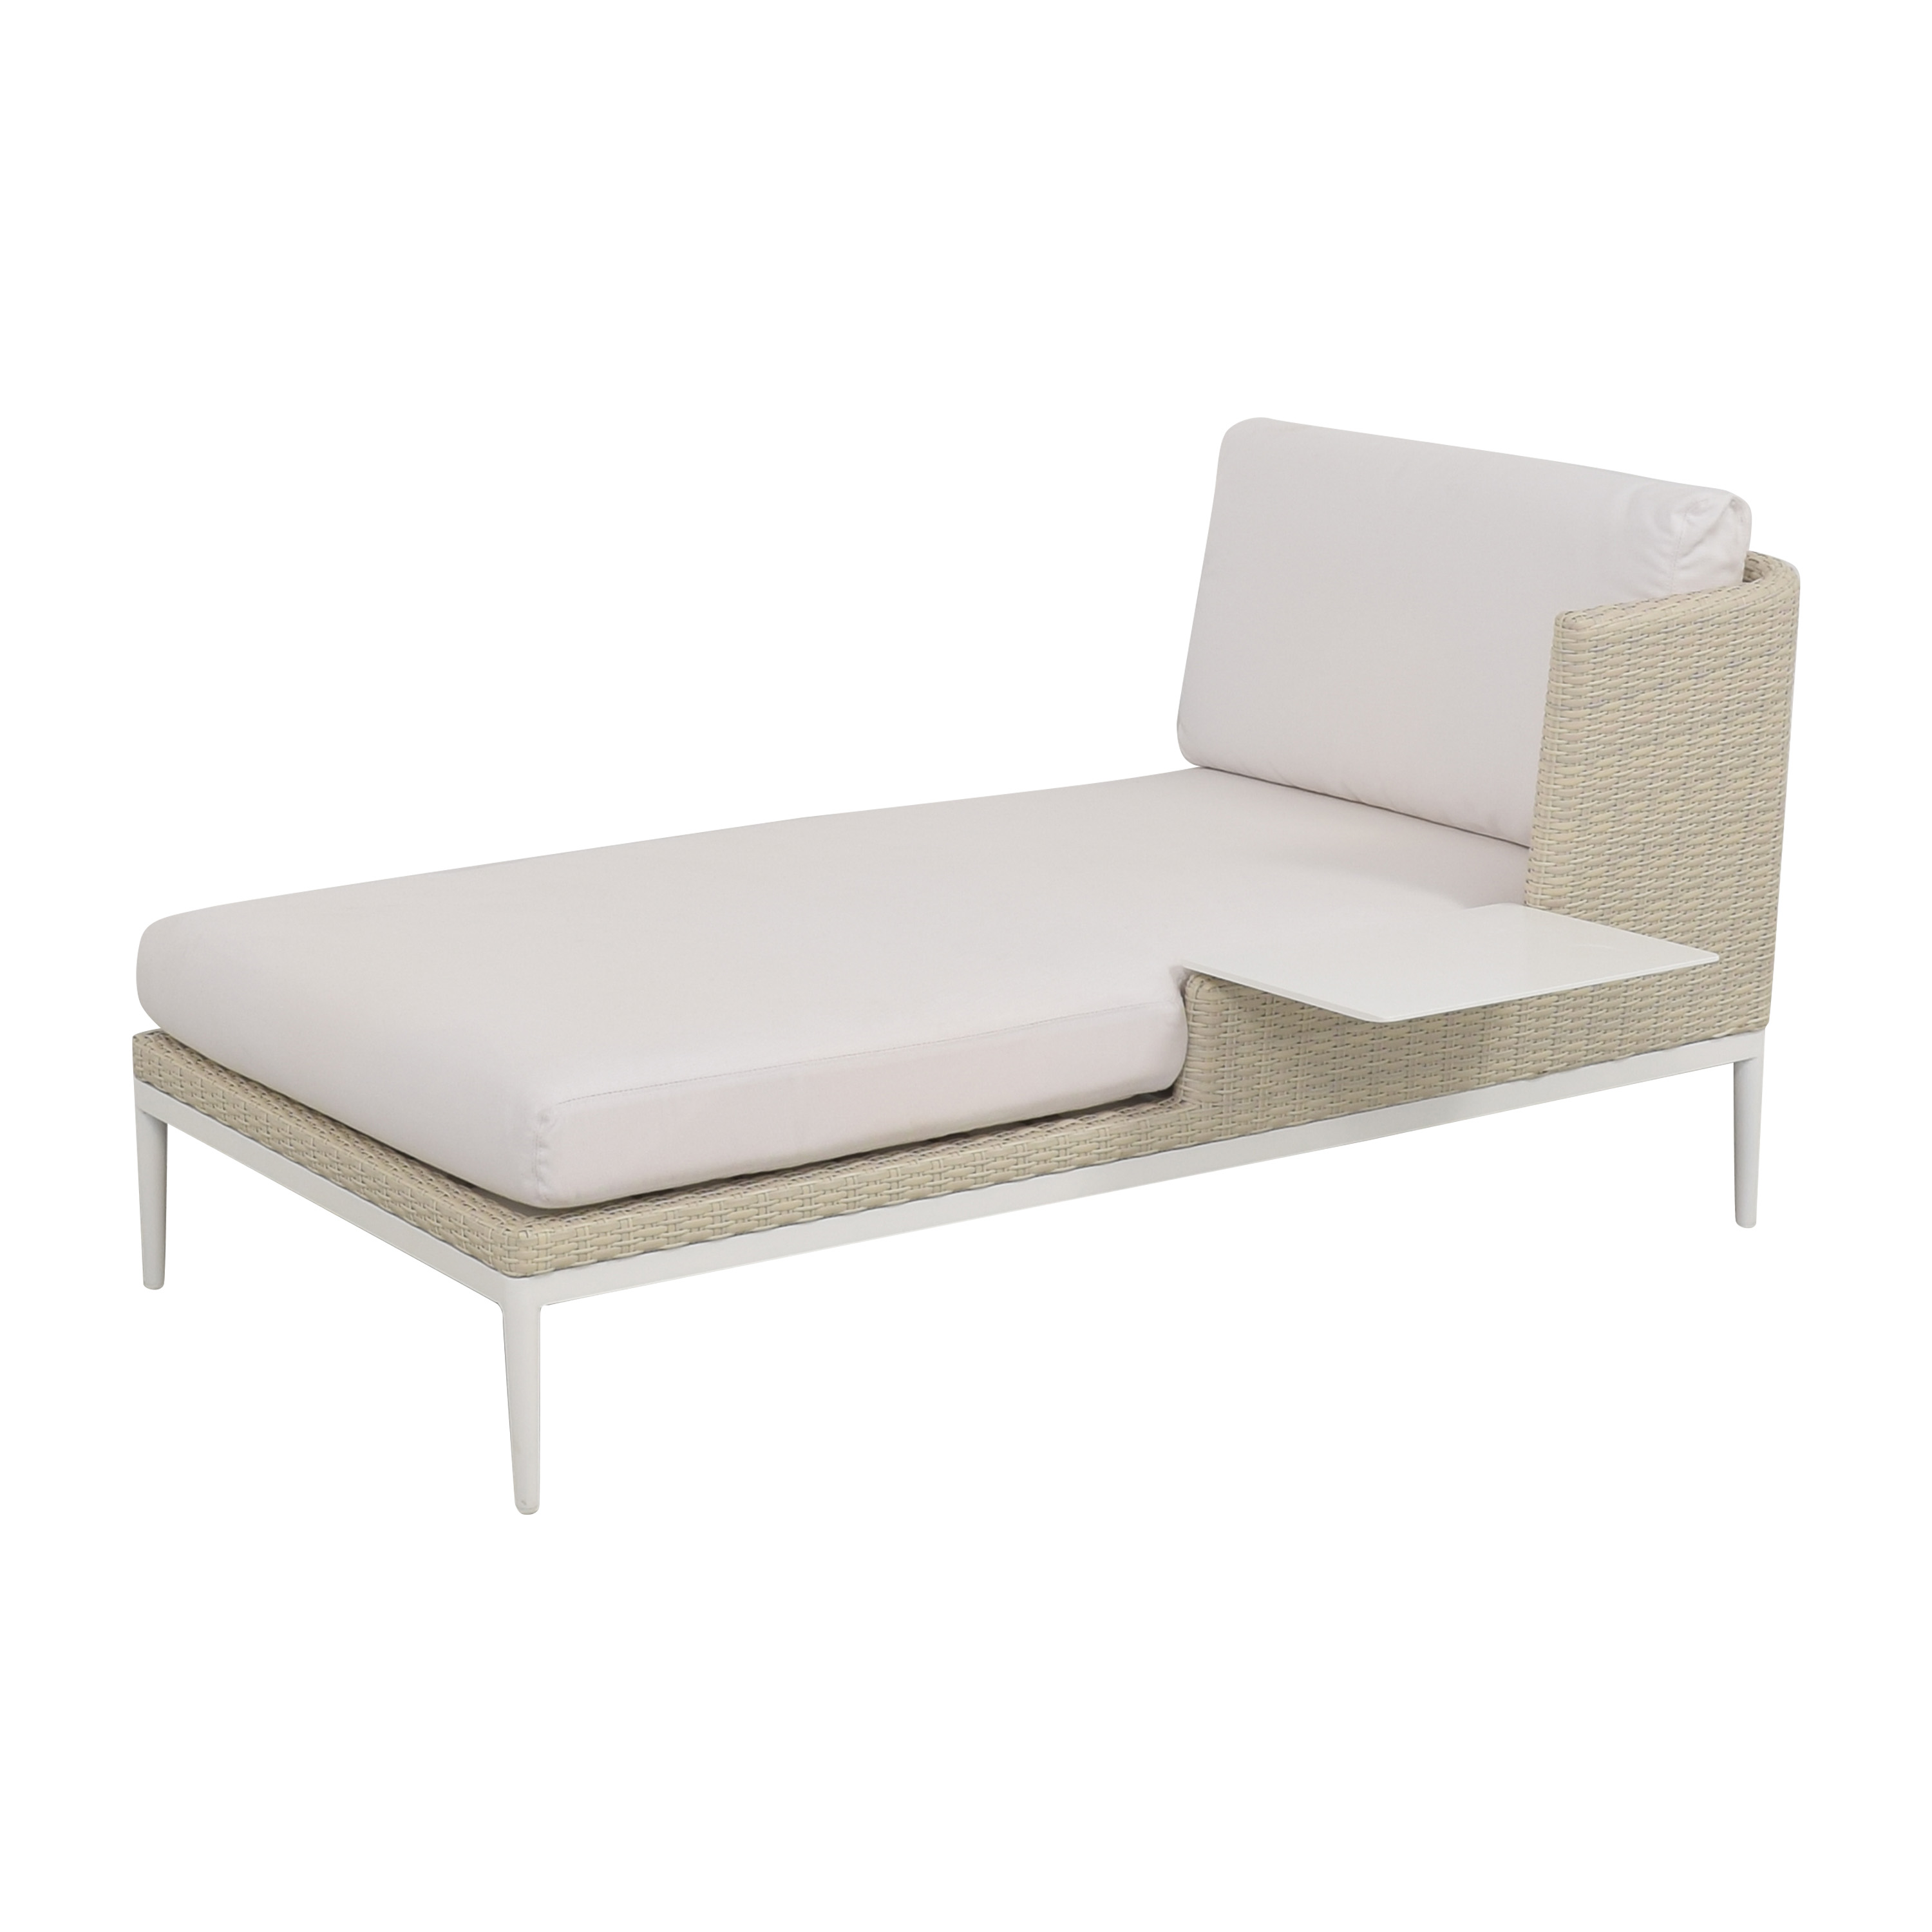 Frontgate Frontgate Porta Forma Palazzo Chaise with Table coupon